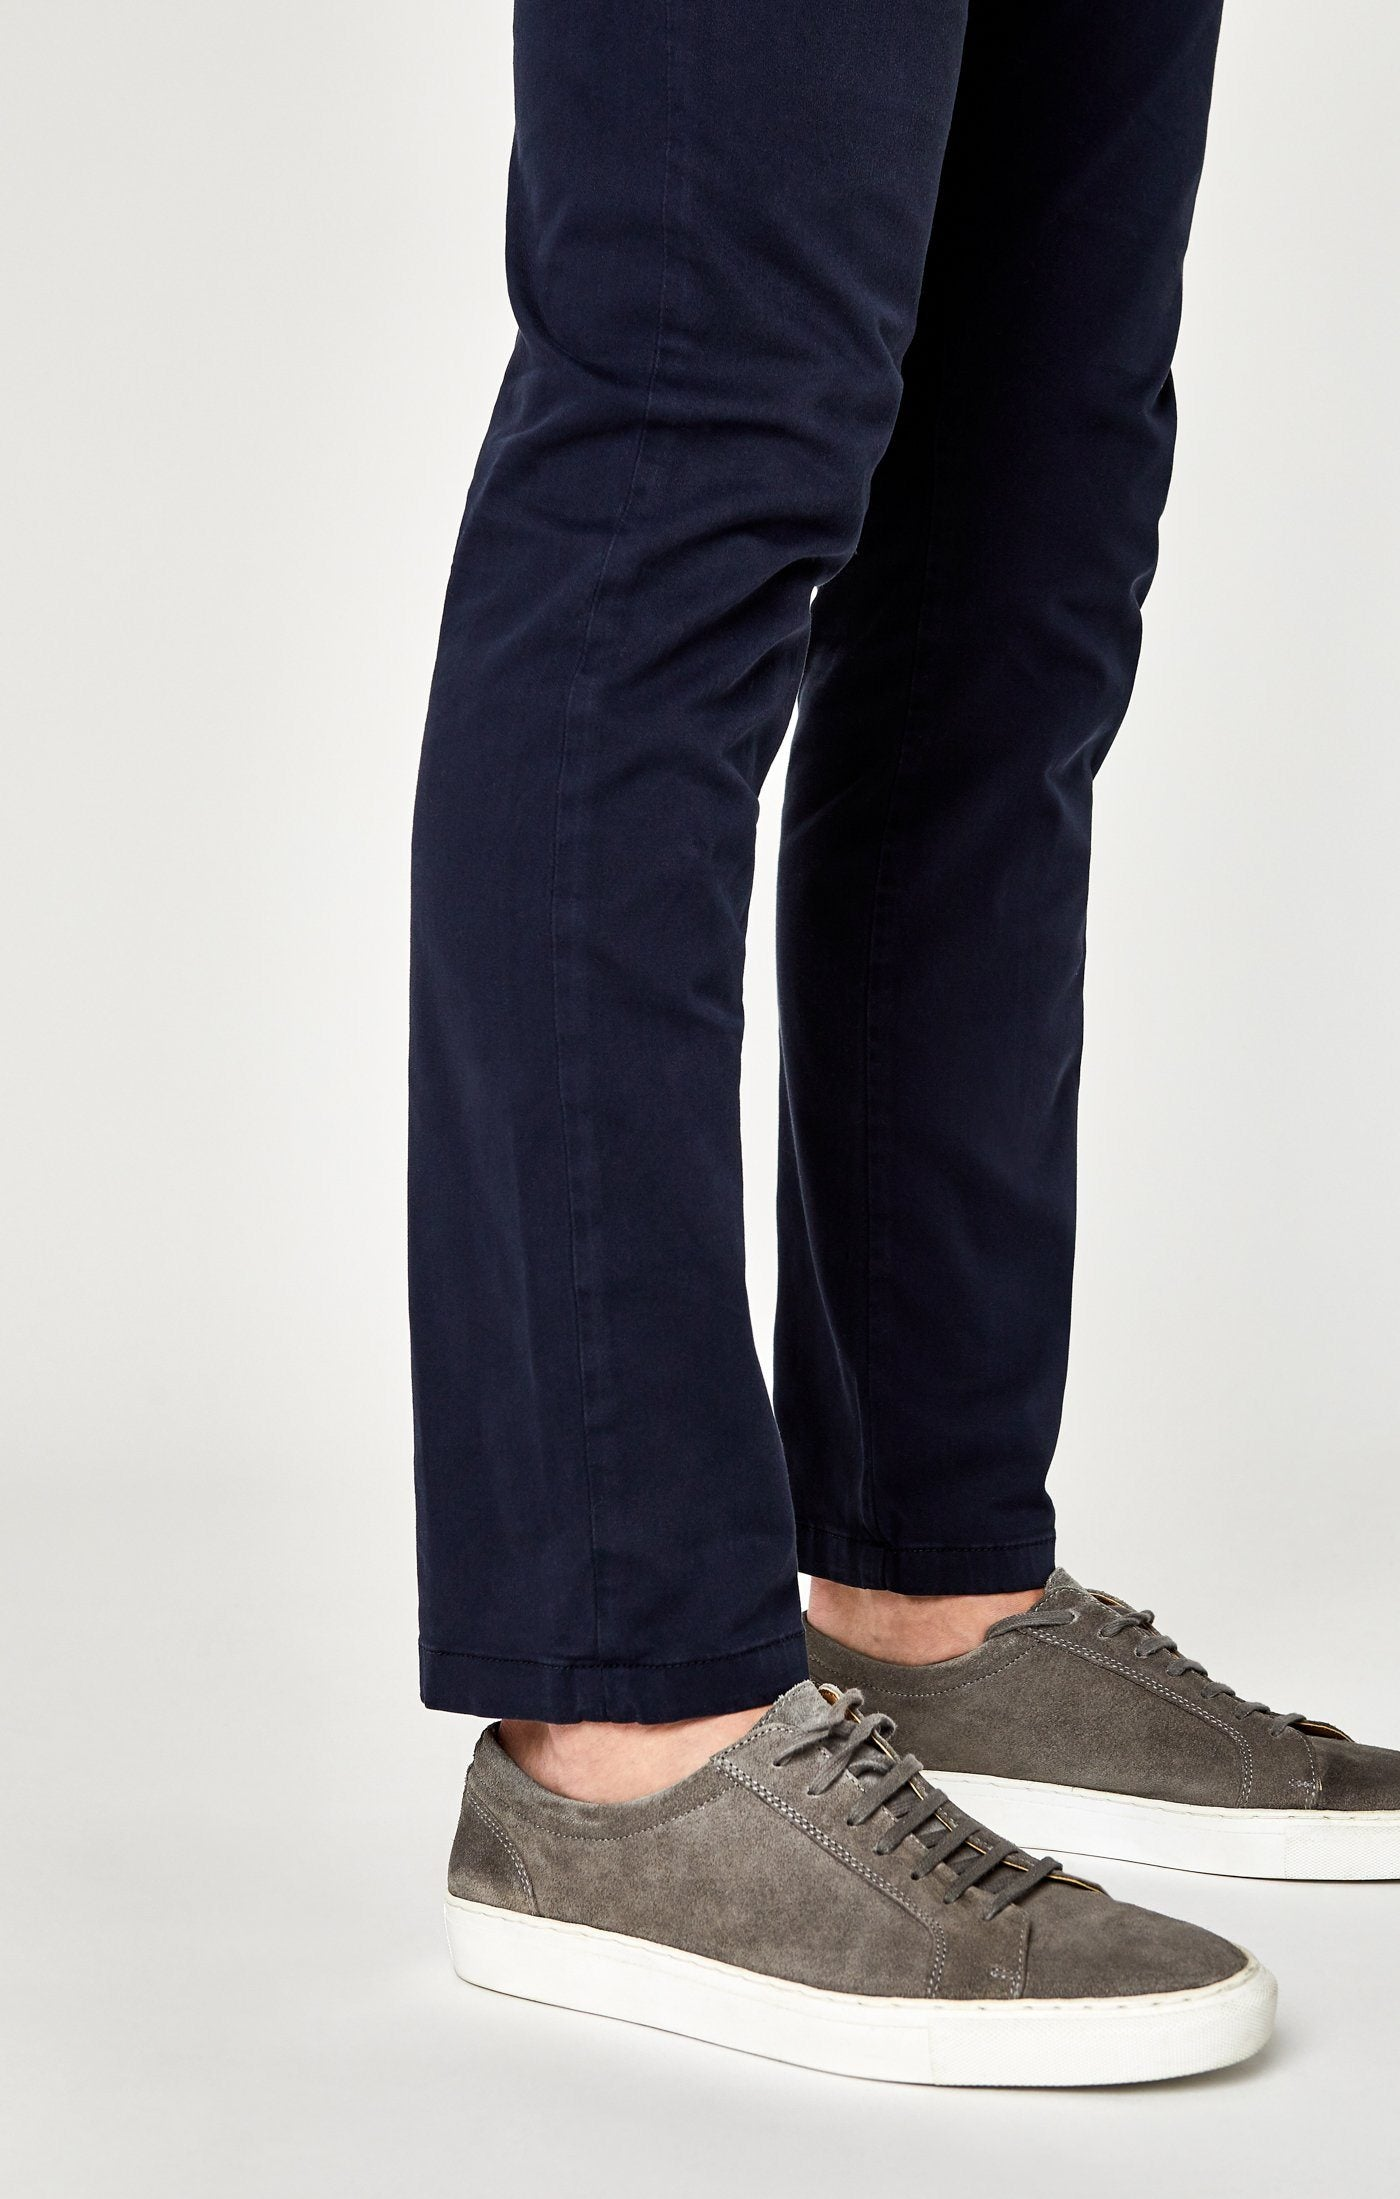 JOHNNY SLIM CHINO IN DARK NAVY TWILL Image 6